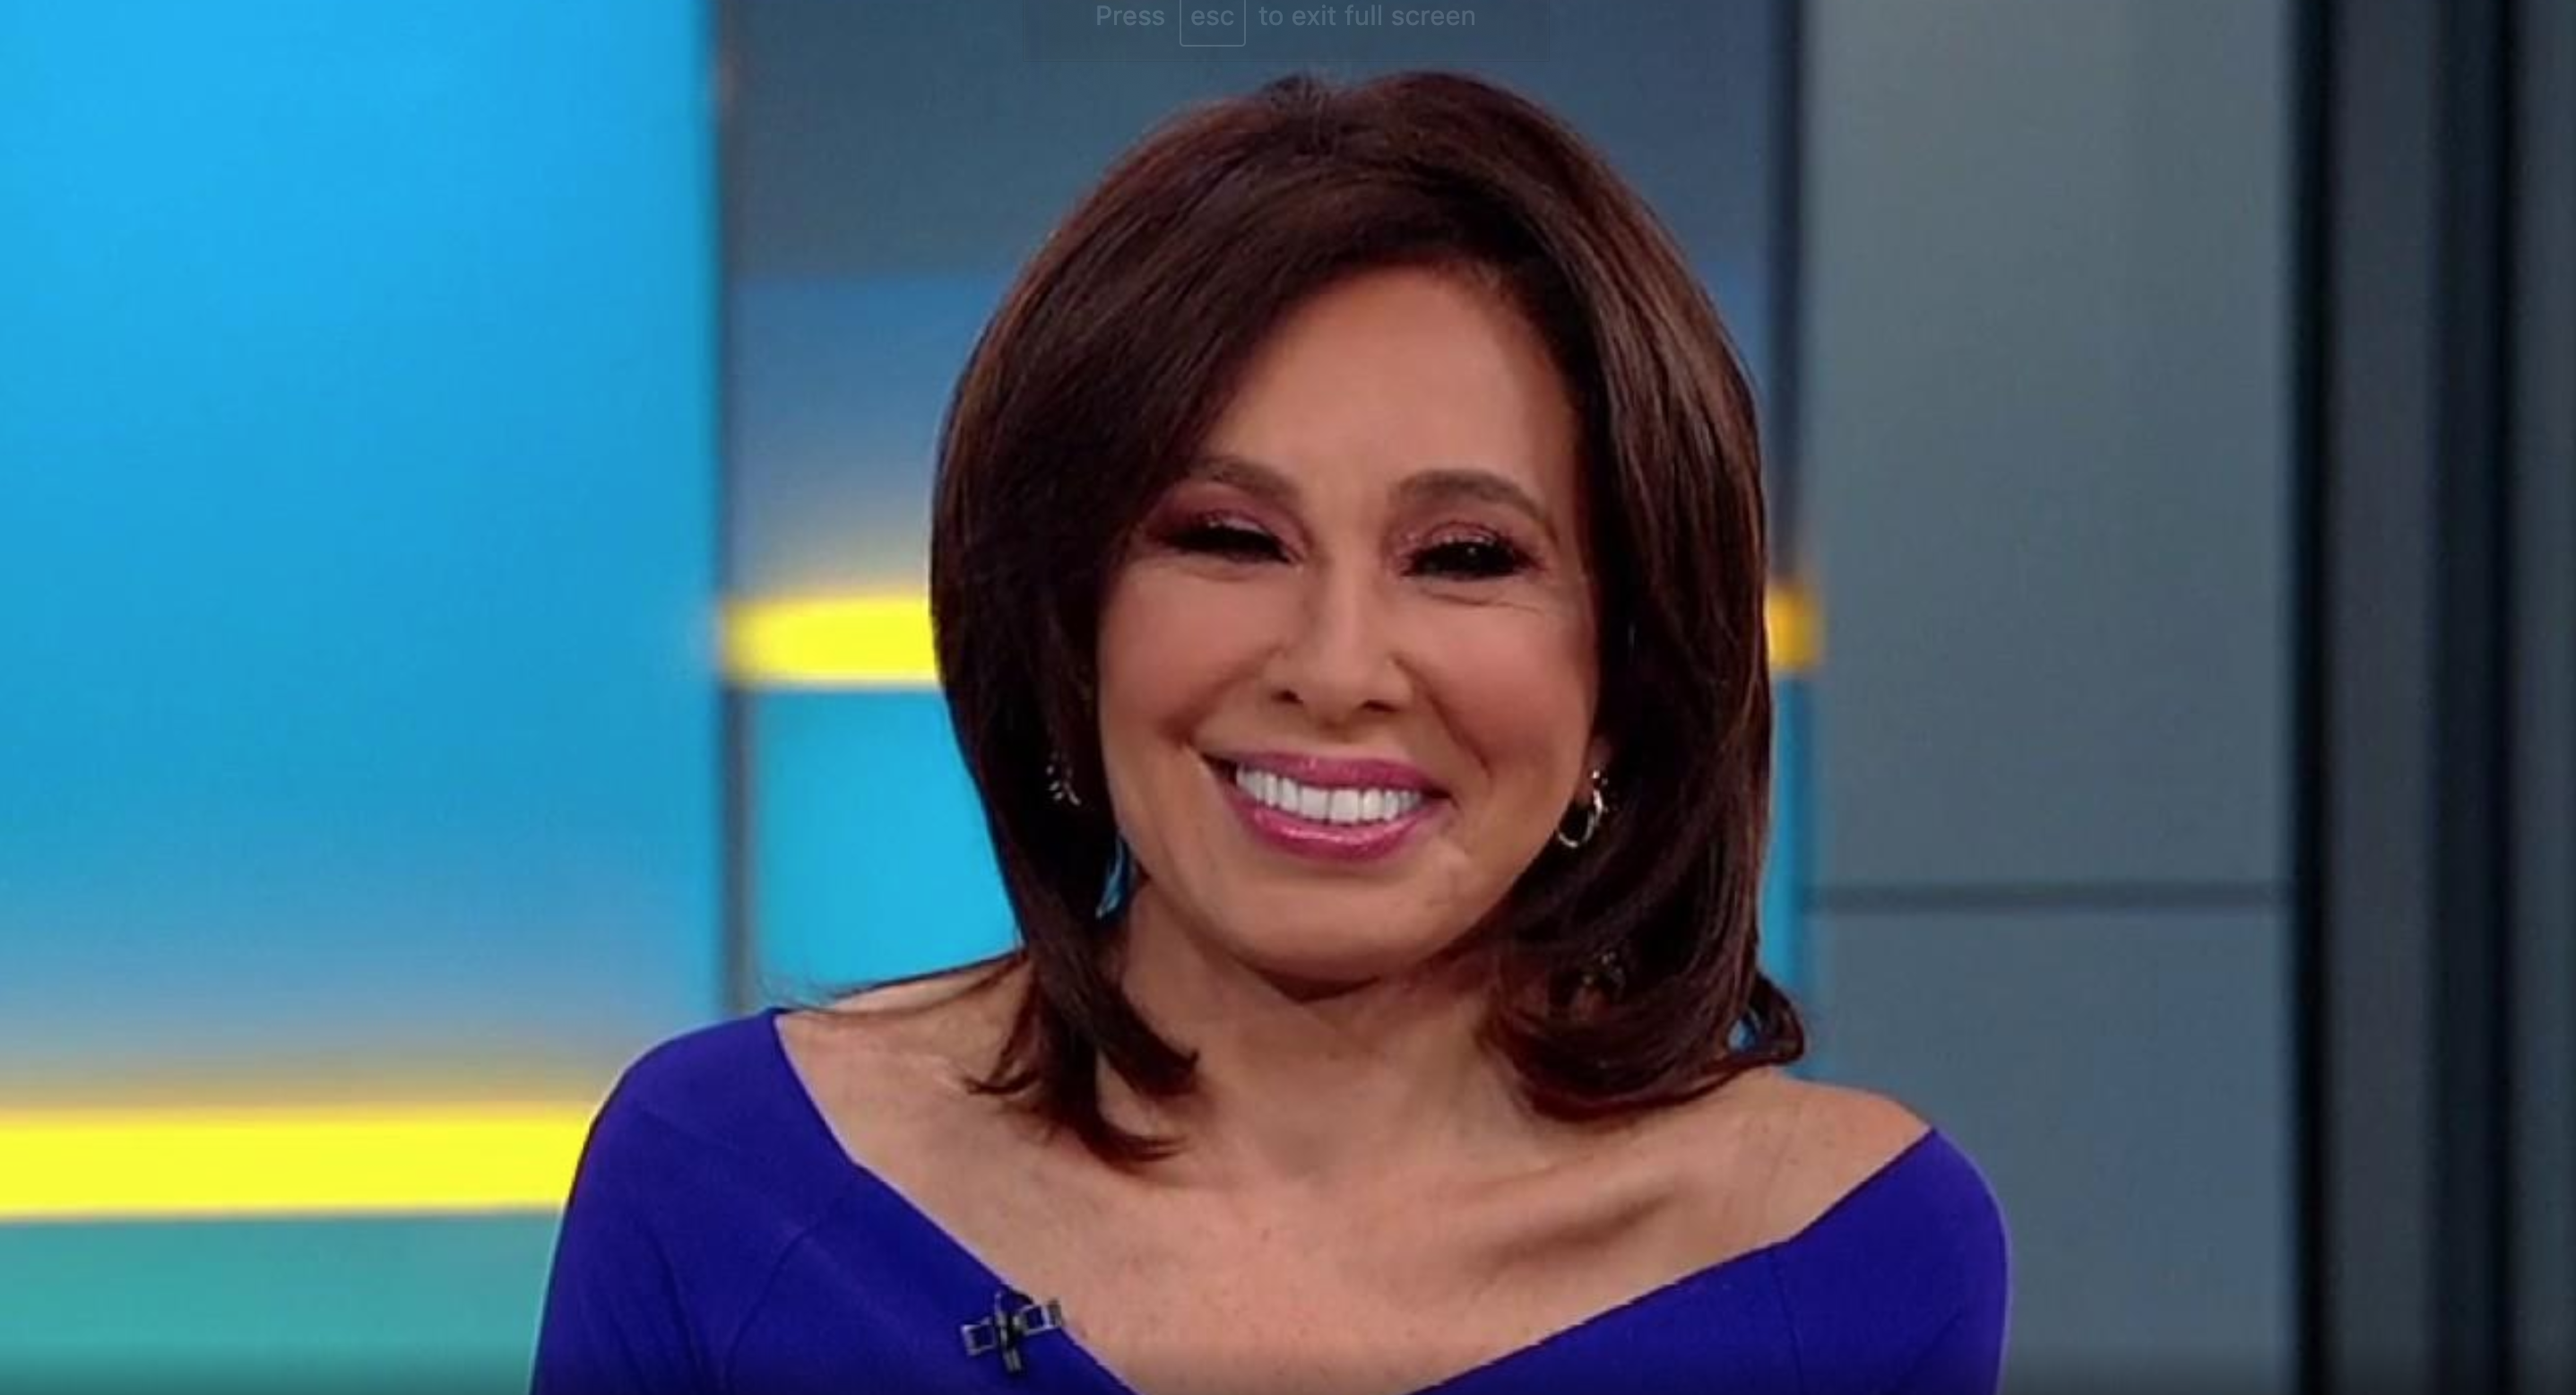 Westlake Legal Group Screen-Shot-2020-01-17-at-10.02.54-AM Judge Jeanine: Dems are about as solemn on impeachment as 2nd graders 'passing gas' Joshua Nelson fox-news/shows/fox-friends fox-news/media/fox-news-flash fox news fnc/media fnc article 237a0c27-9acc-57b9-a1ad-2472ed12b6fa